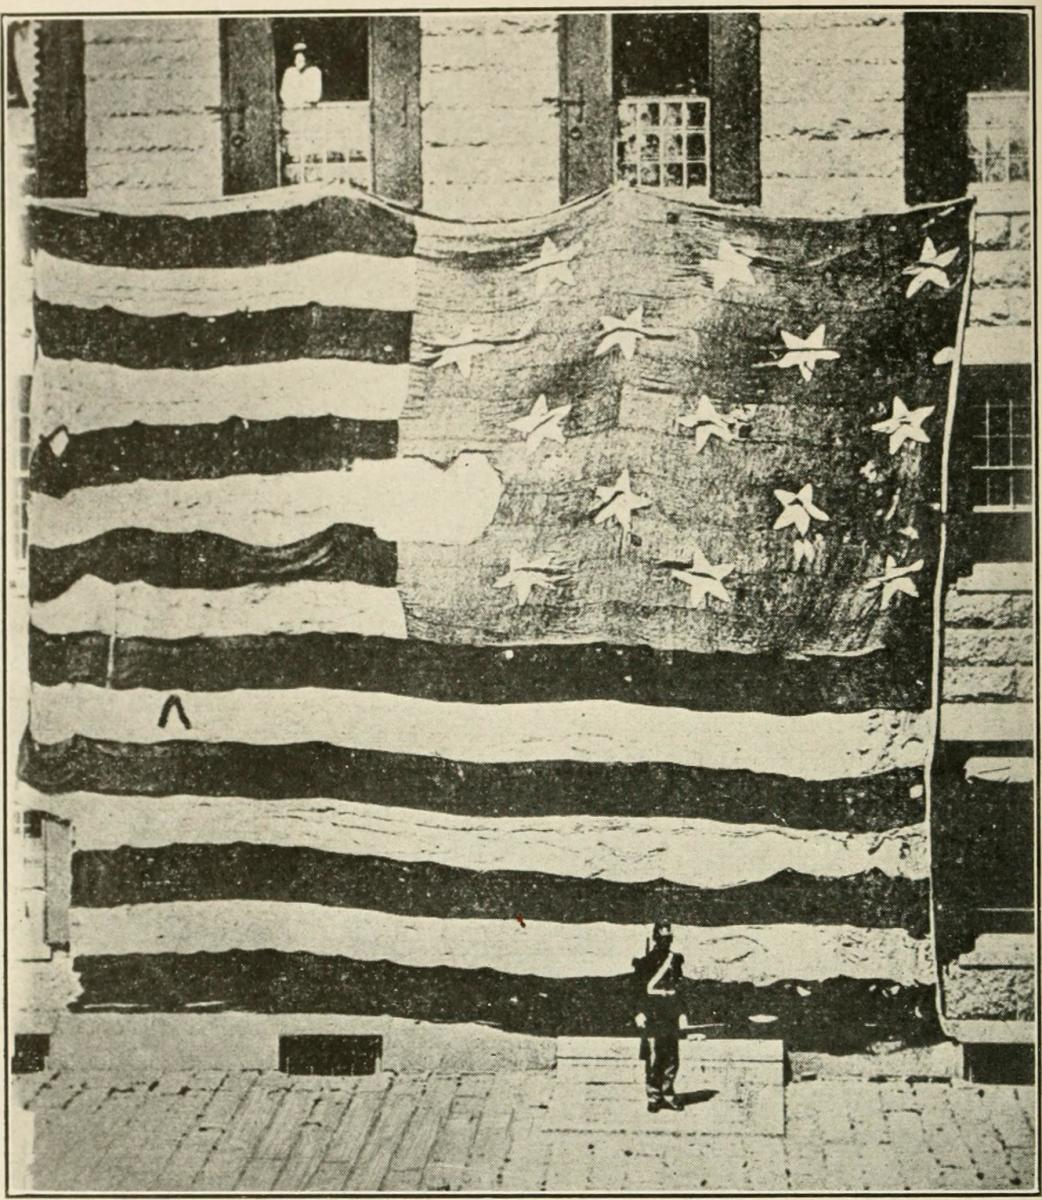 The original Fort McHenry flag measured 30 by 42 feet. The flag was designed so that opposing forces could the flag from afar.